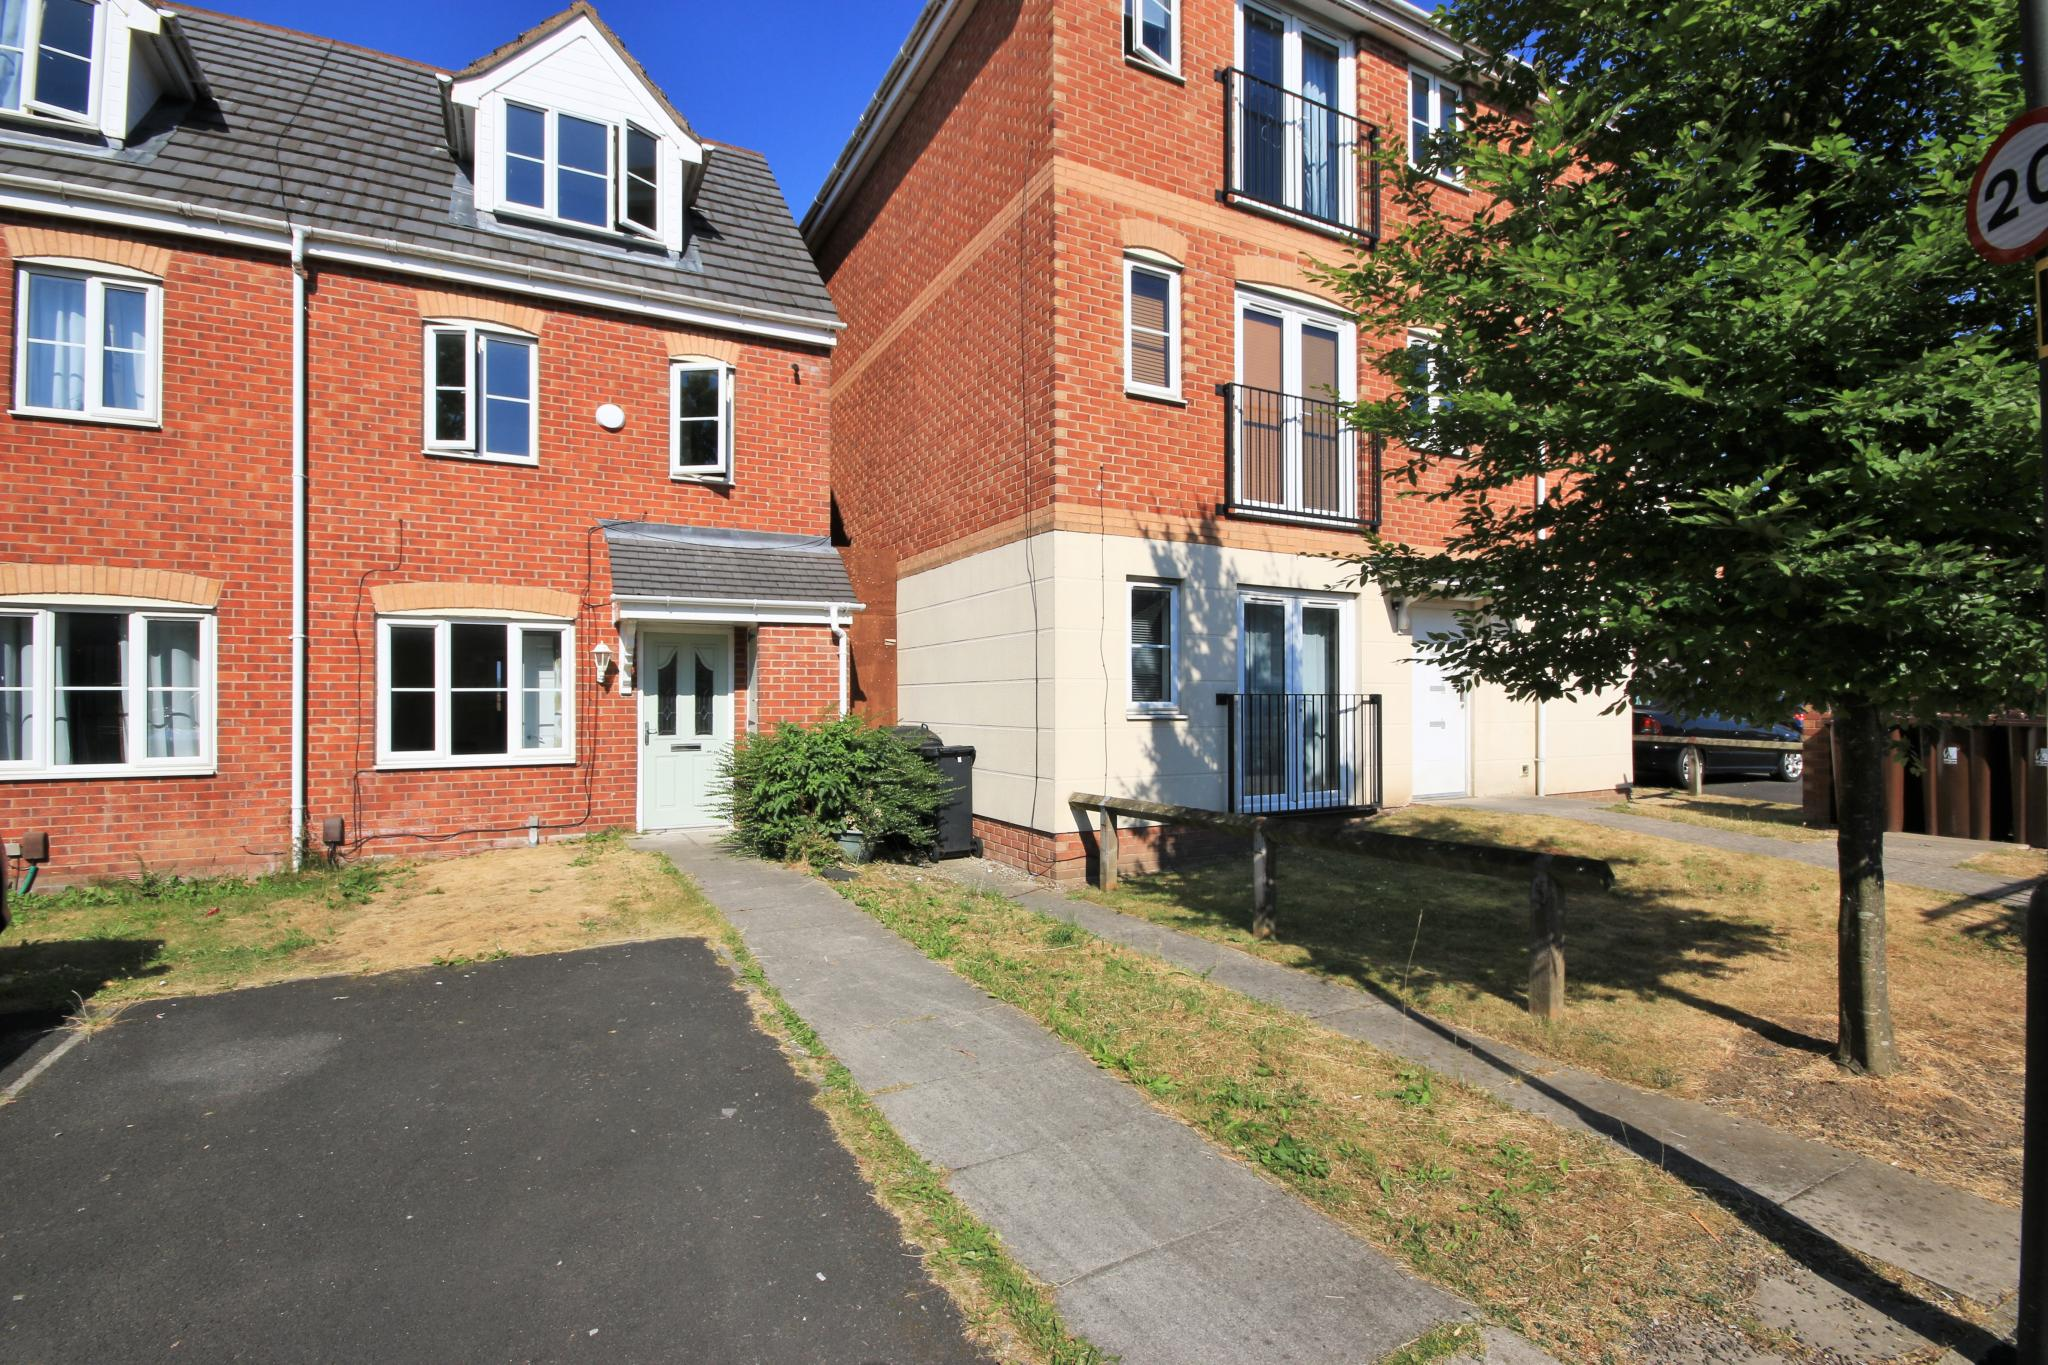 3 Bedroom Town House For Sale - Photograph 1